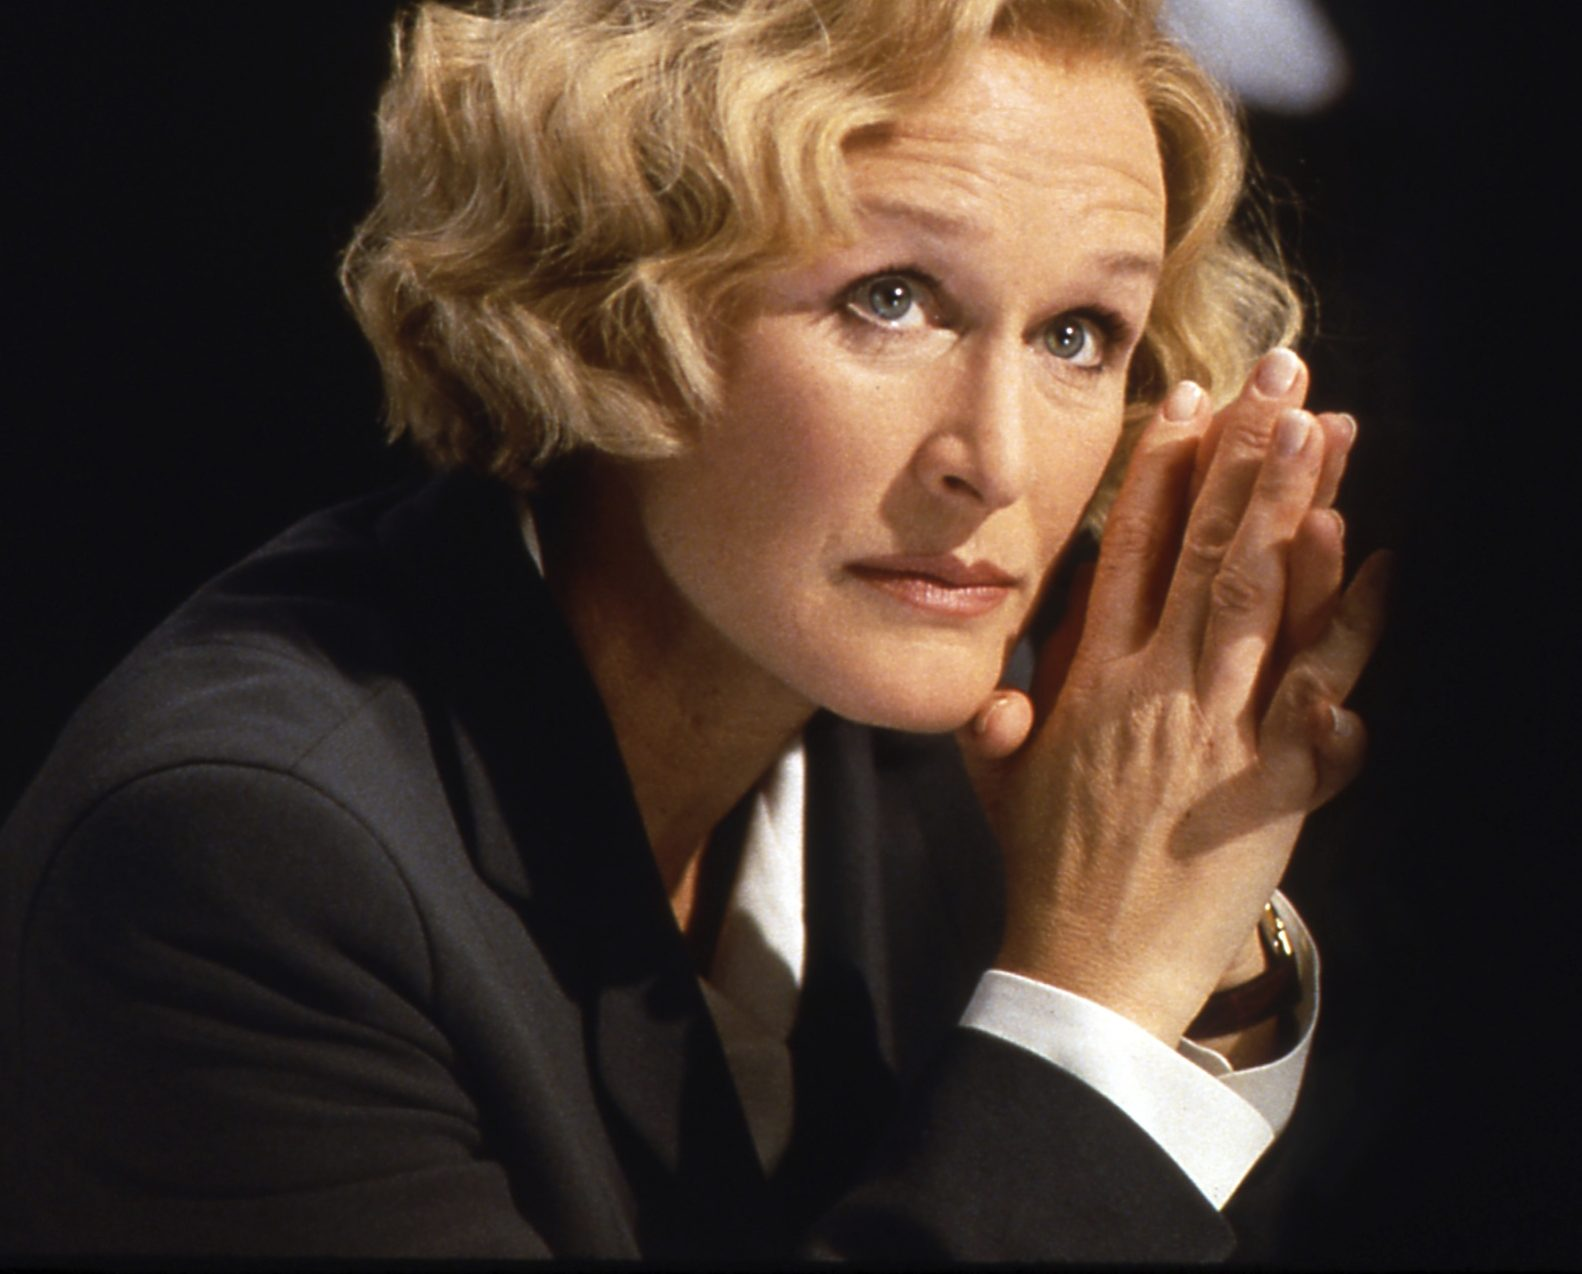 Air Force One Glenn Close e1623331520880 20 Presidential Facts You Didn't Know About Air Force One